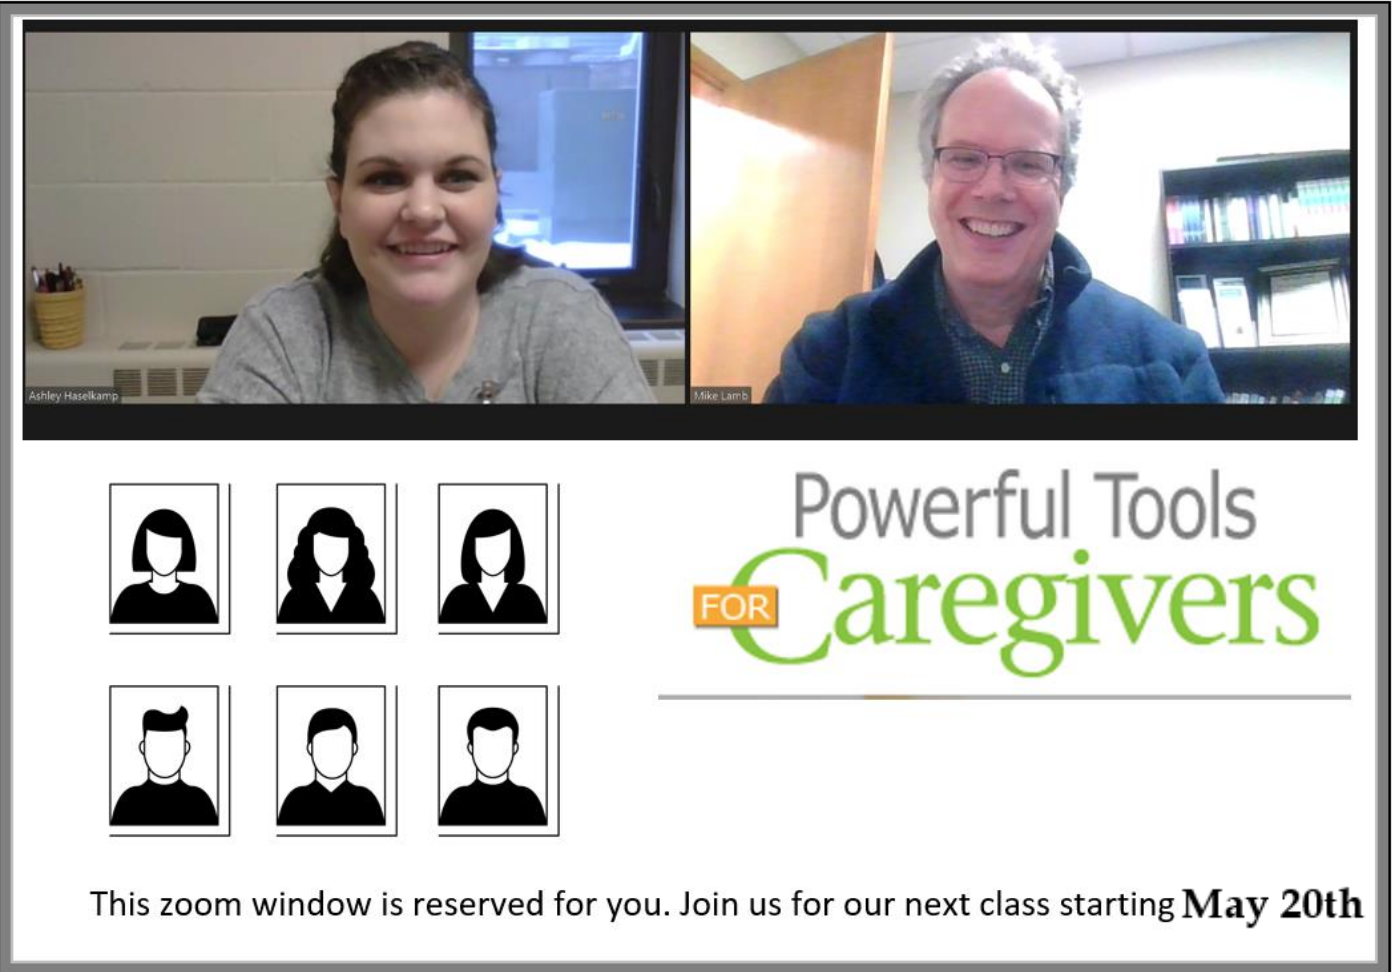 Powerful Tools for Caregiver graphic